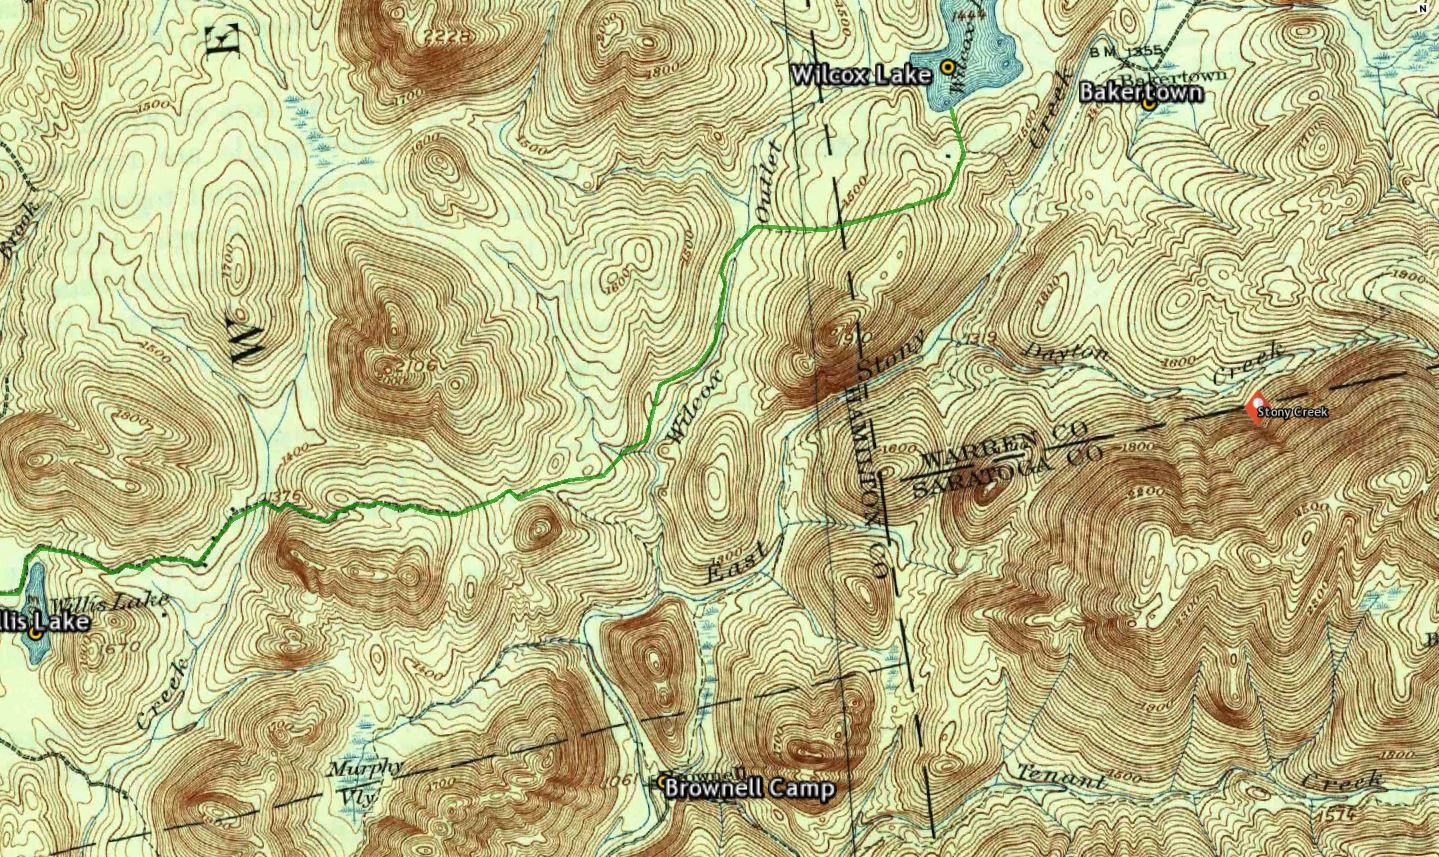 image one from the stony creek usgs historical topographic map 1 62500 1910 edition the route to wilcox lake follows an old woods road from willis lake